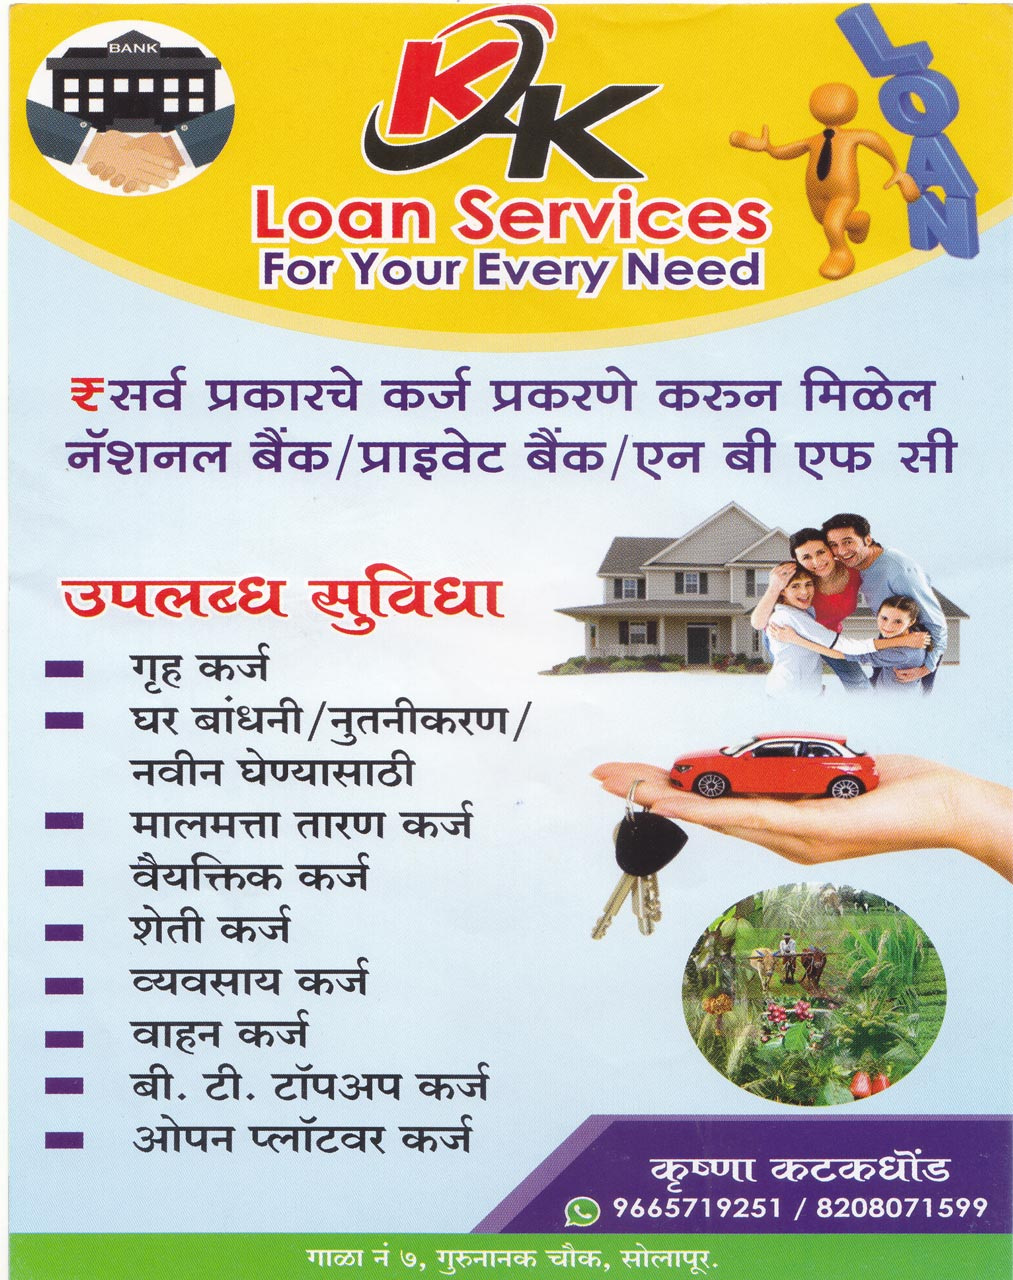 KK LOAN SERVICES<br> For Your Every Need